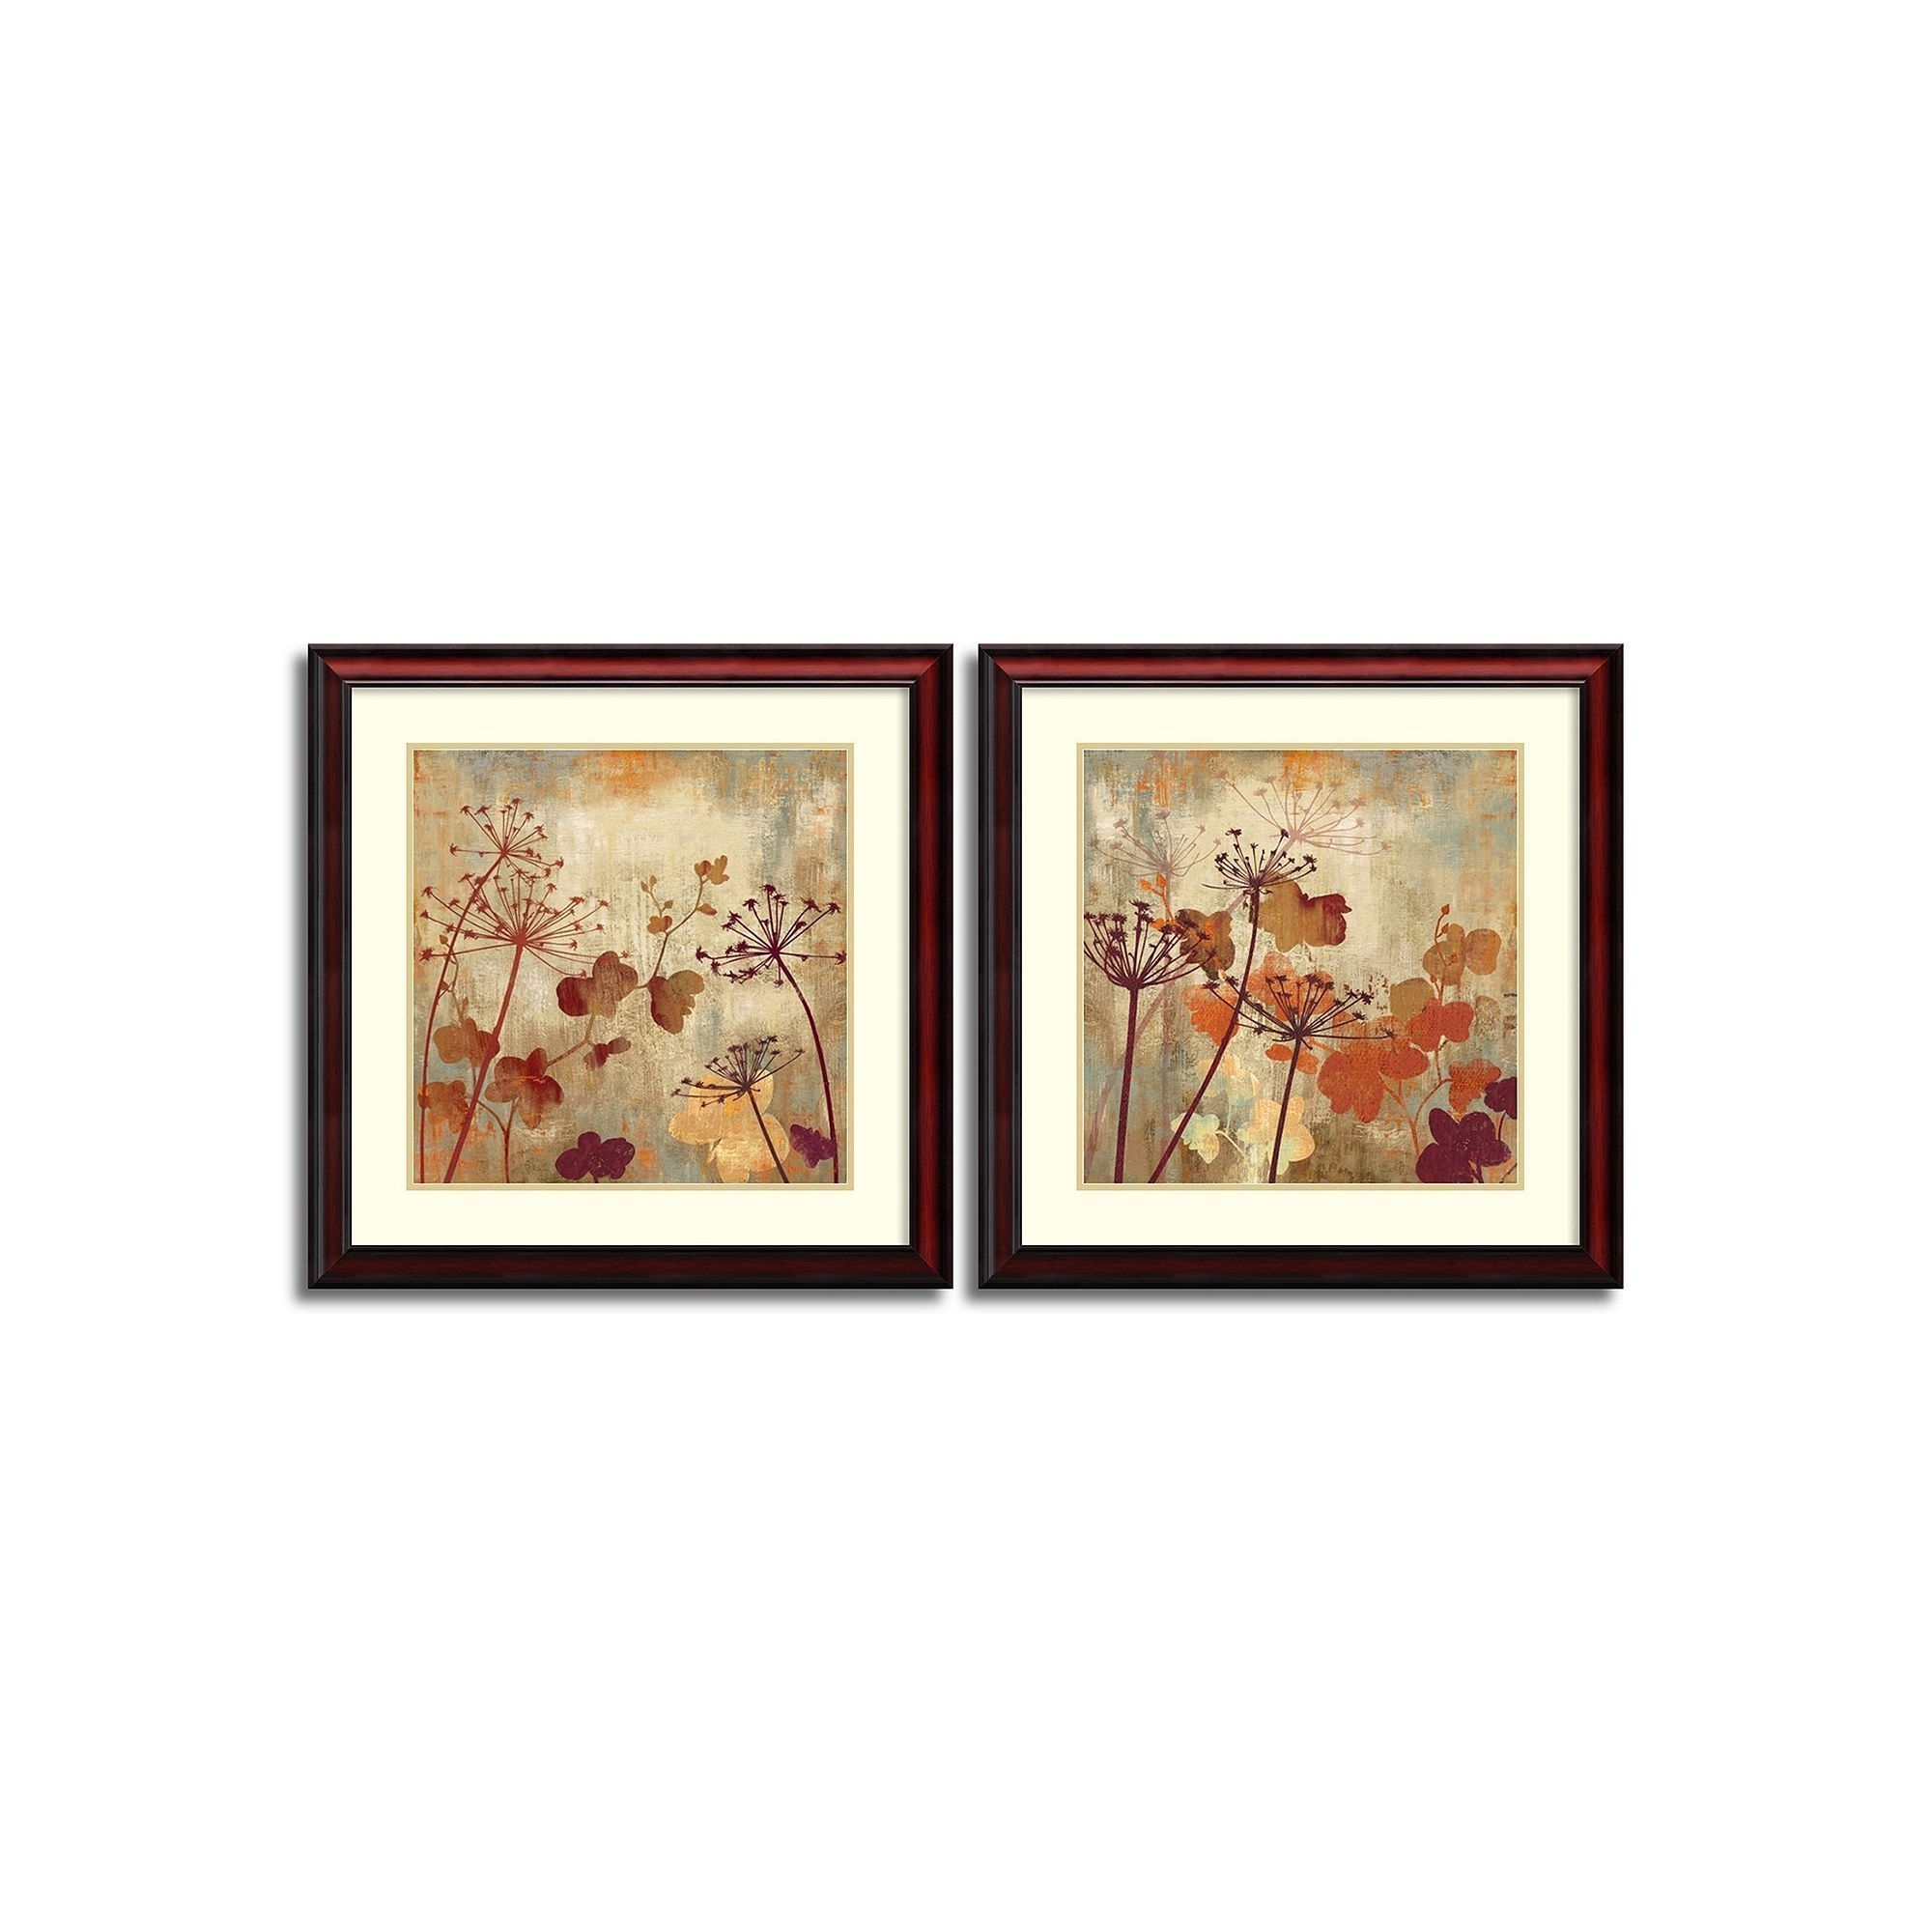 Well Known Fascinating Framed Wall Art Sets 5 Smart Design Canvas Home Throughout Wall Art Sets (View 15 of 15)